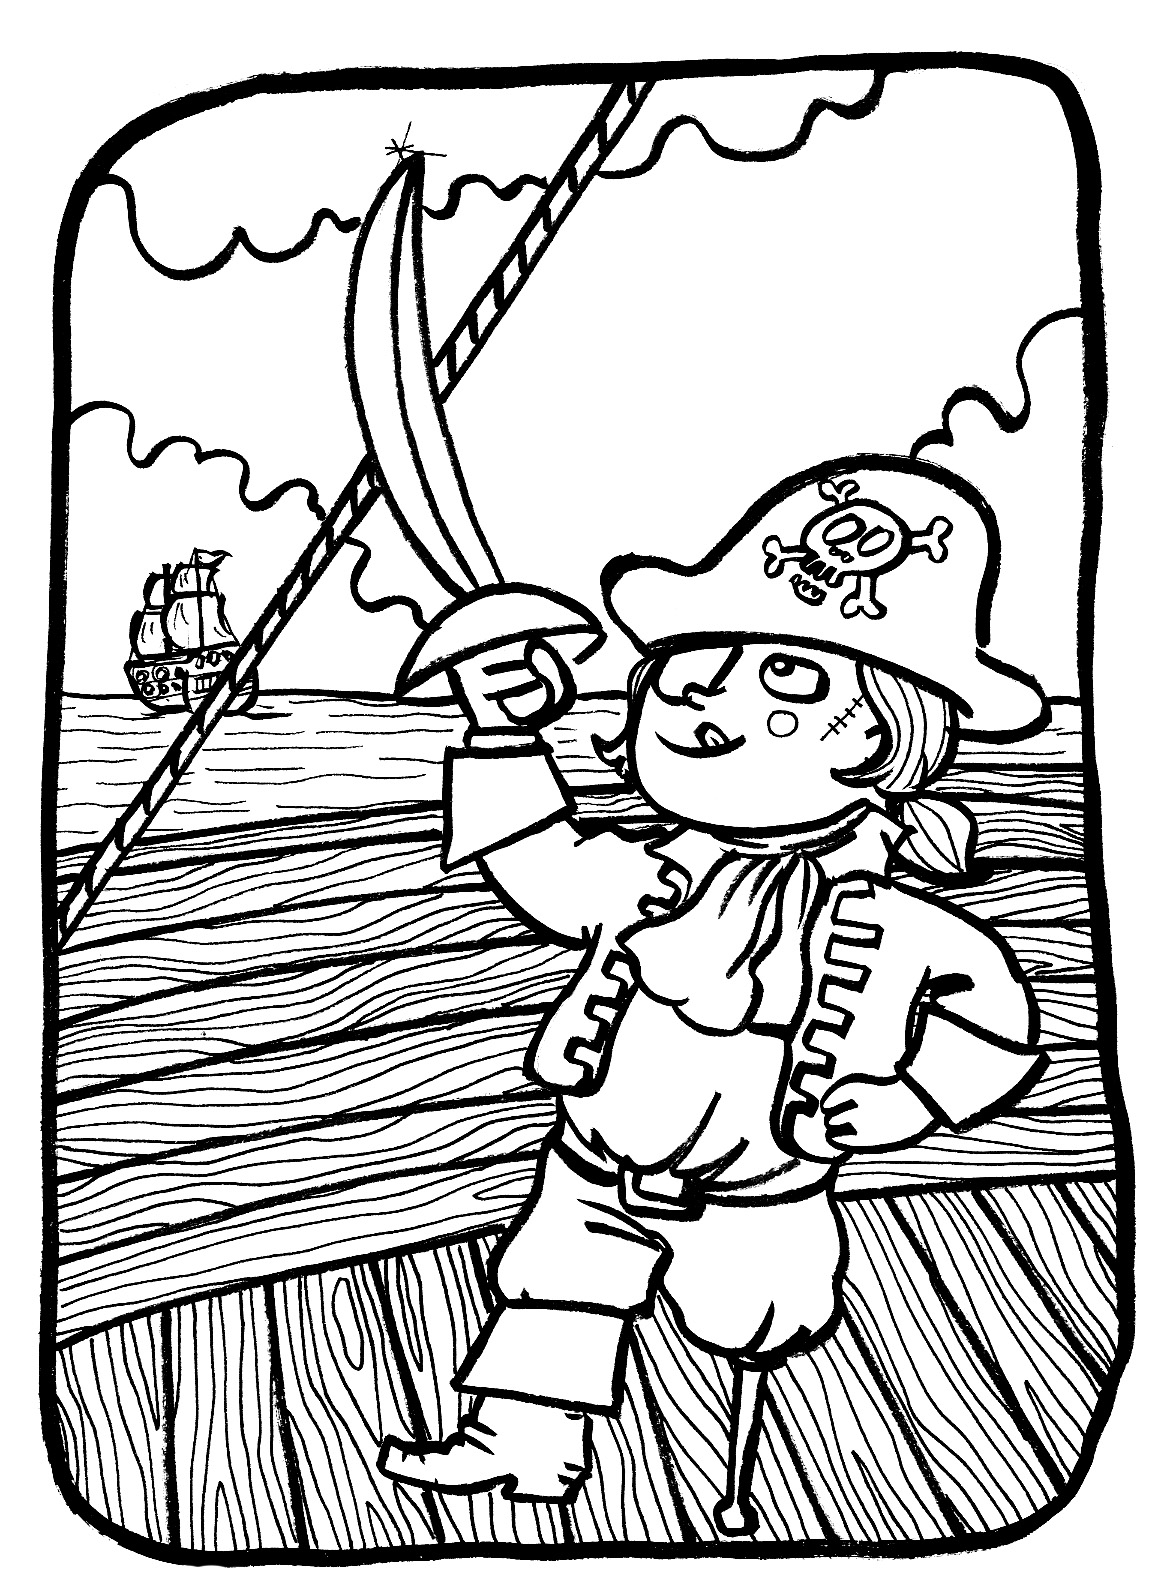 Dessin de Pirate 413   imprimer